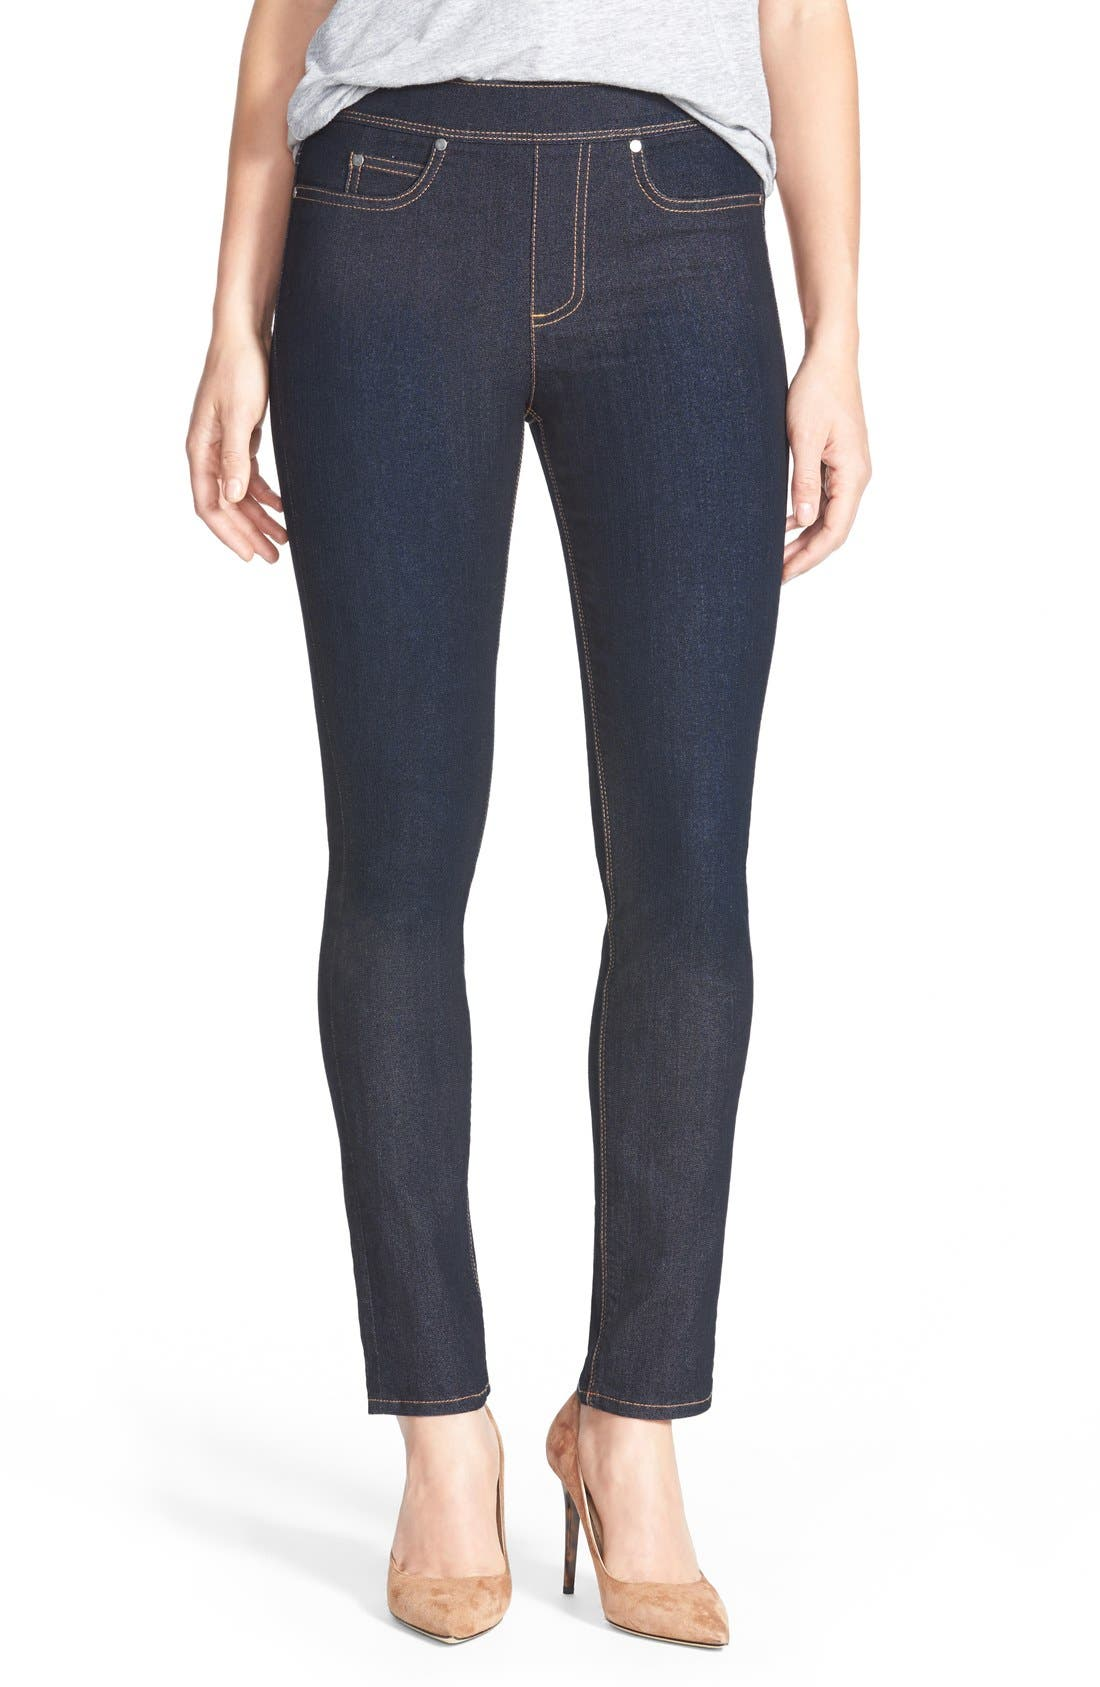 Main Image - Two by Vince Camuto Stretch Denim Leggings